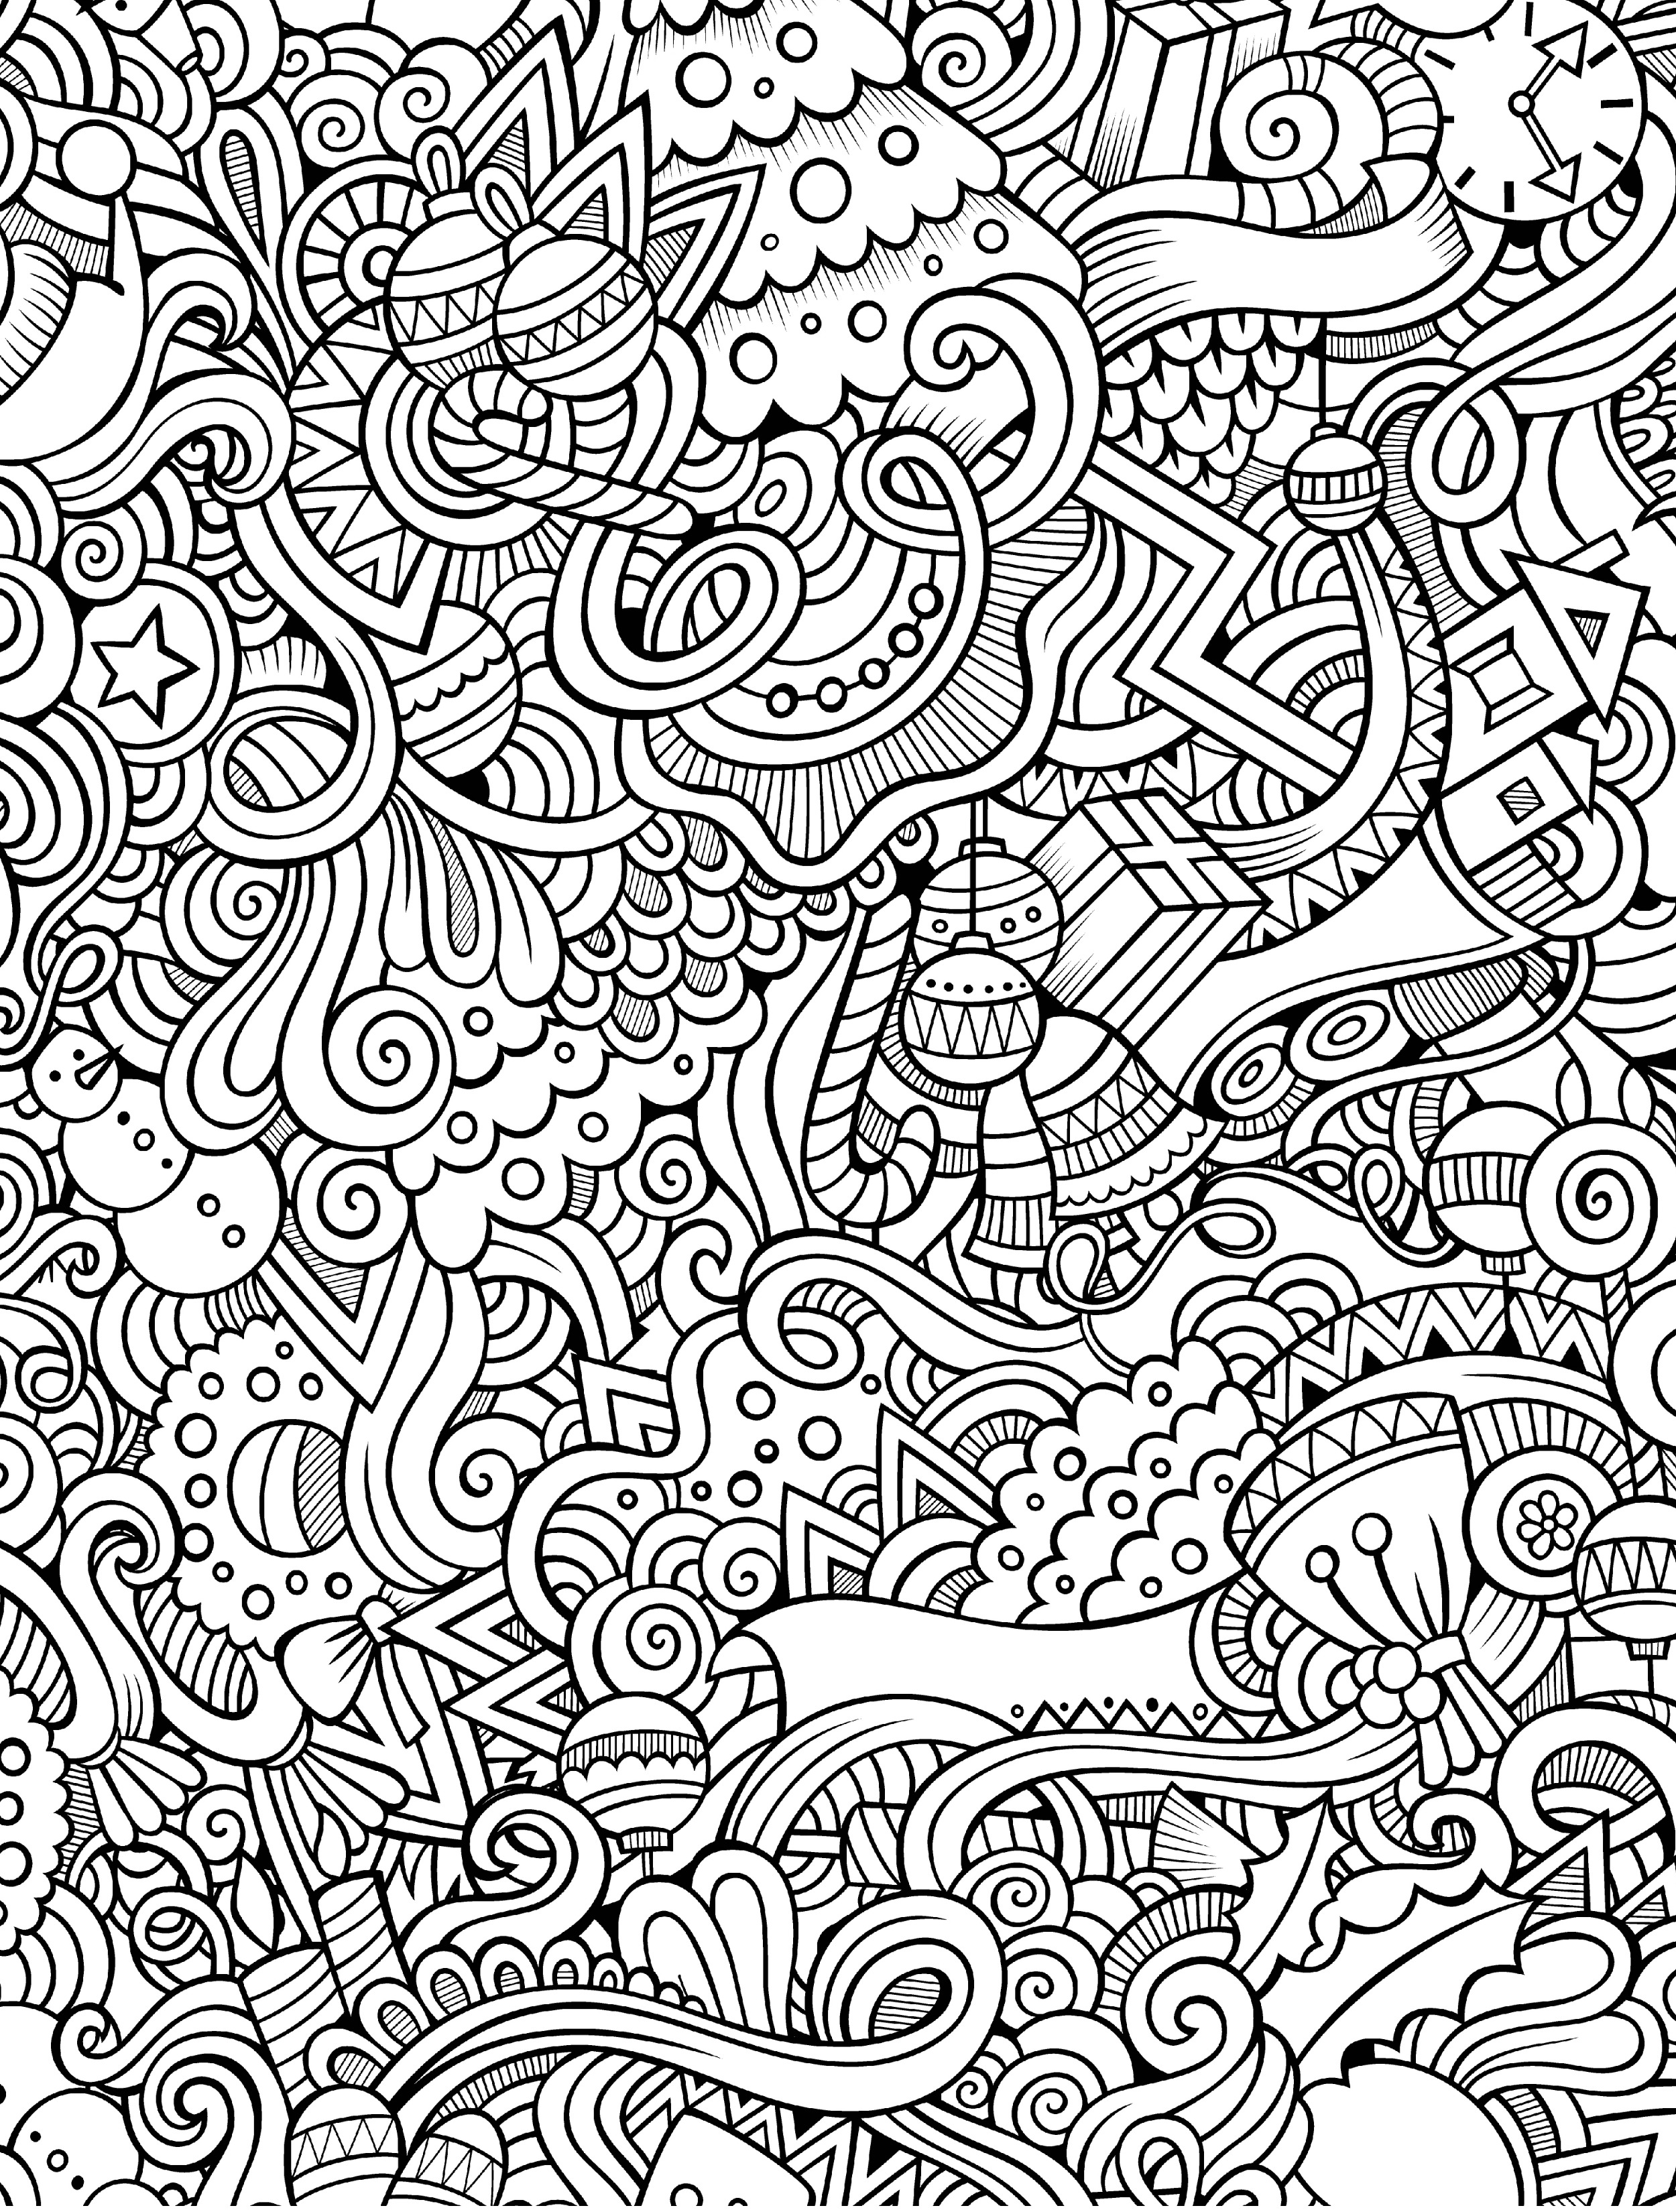 Christmas Coloring Sheets Pdf Free With Pages For Adults Printable Page